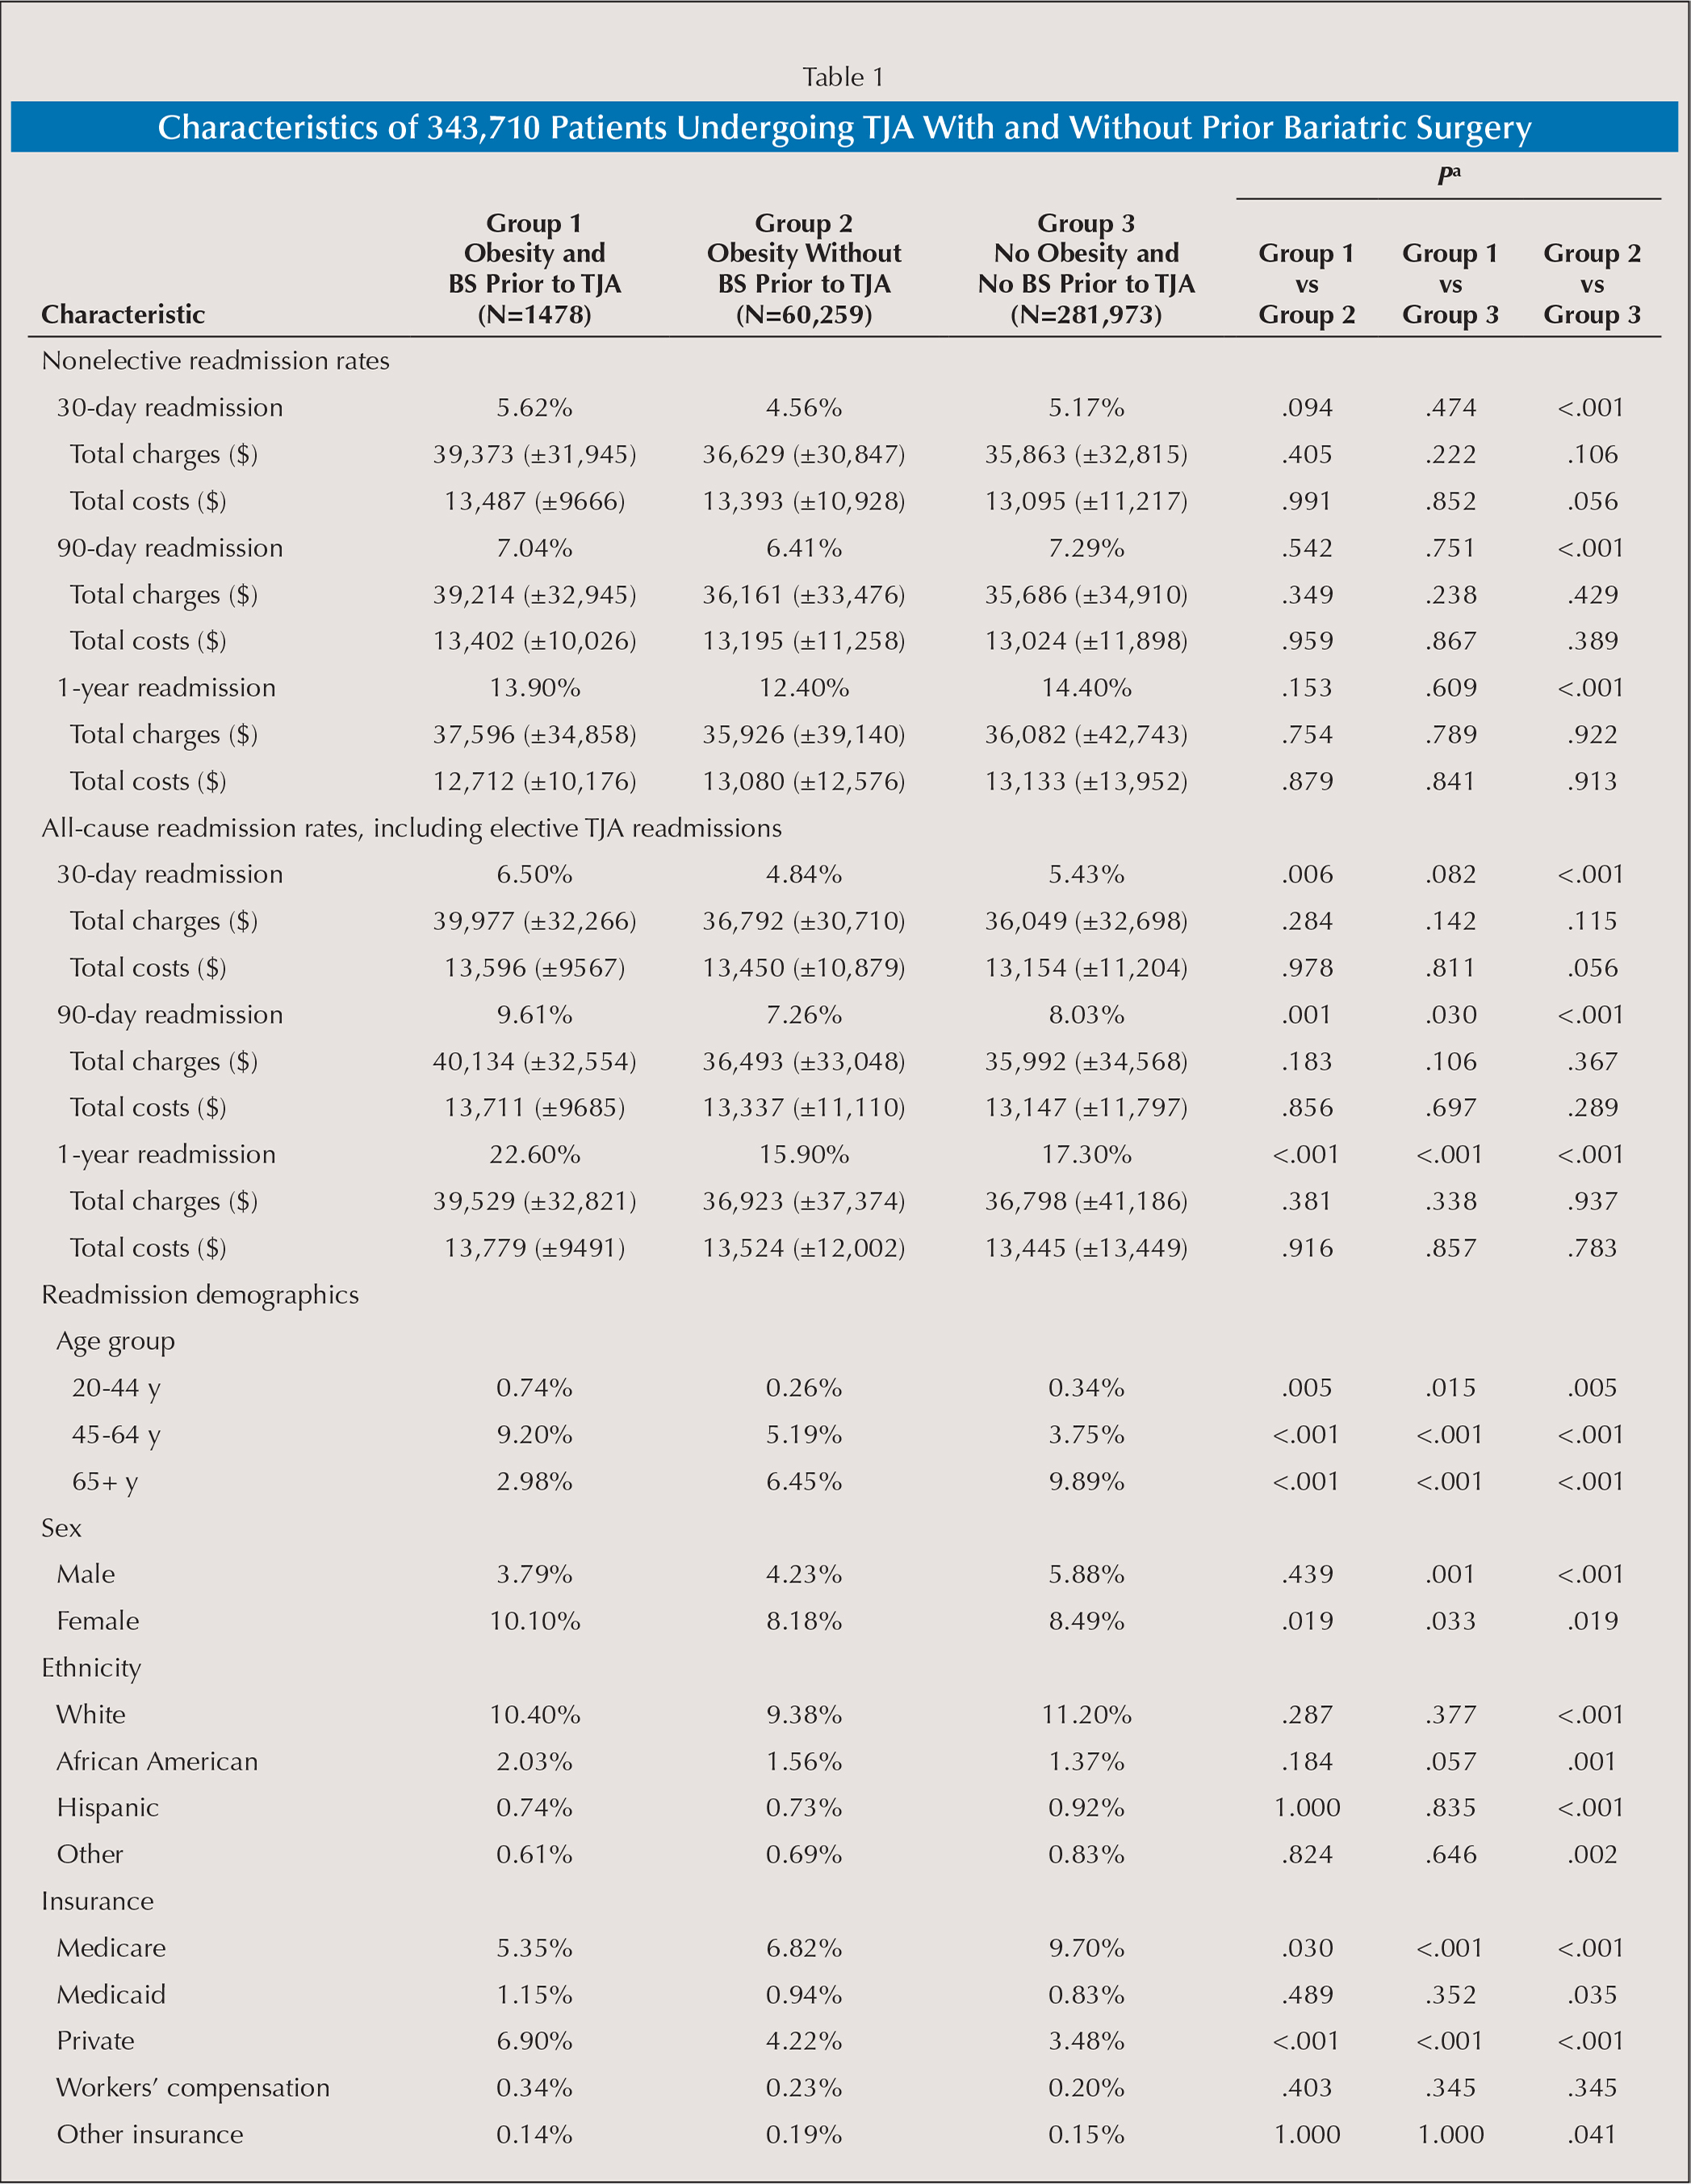 Characteristics of 343,710 Patients Undergoing TJA With and Without Prior Bariatric Surgery